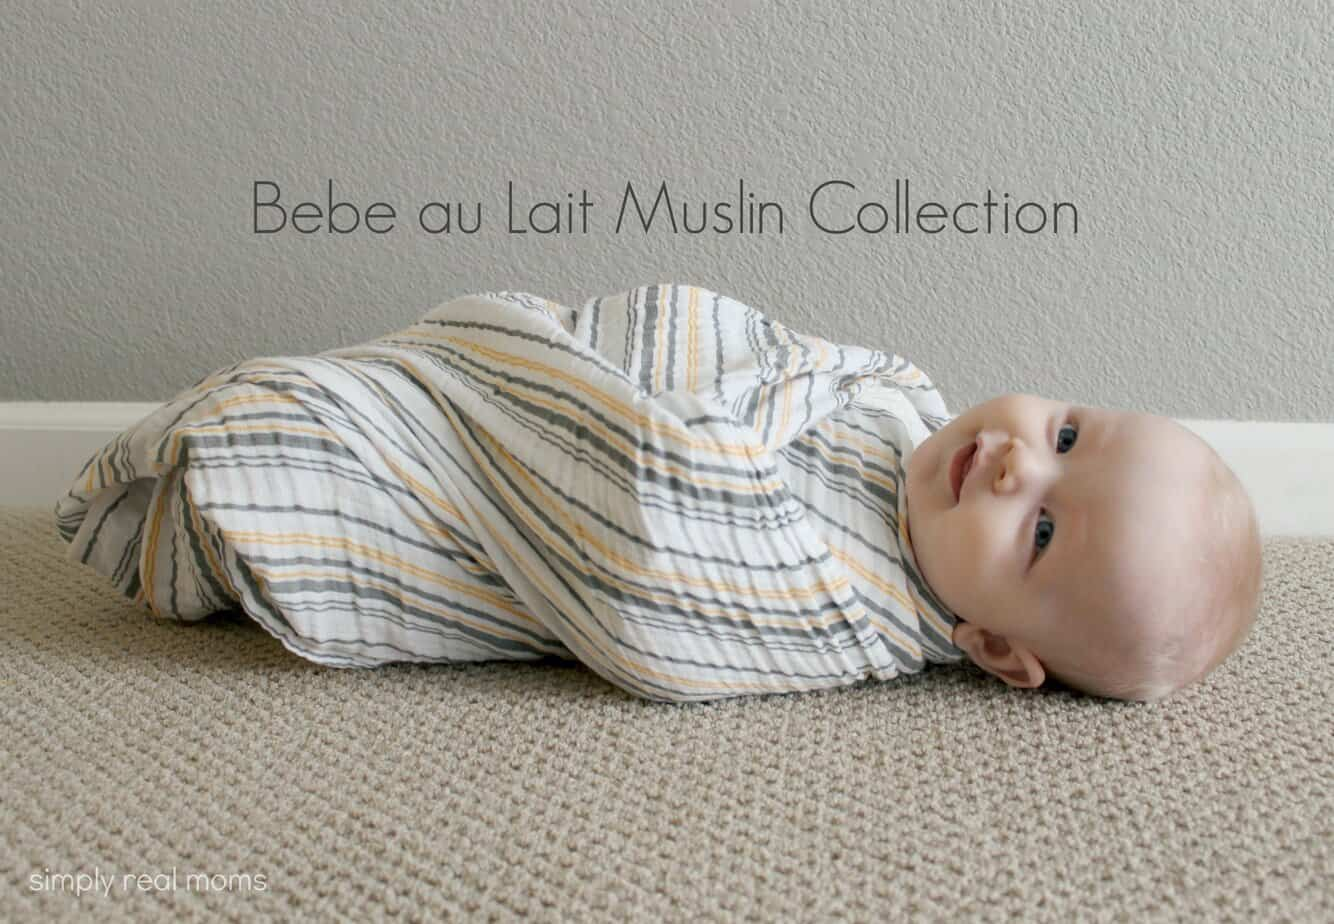 The New Bebe Au Lait Muslin Collection Is Perfection! 7